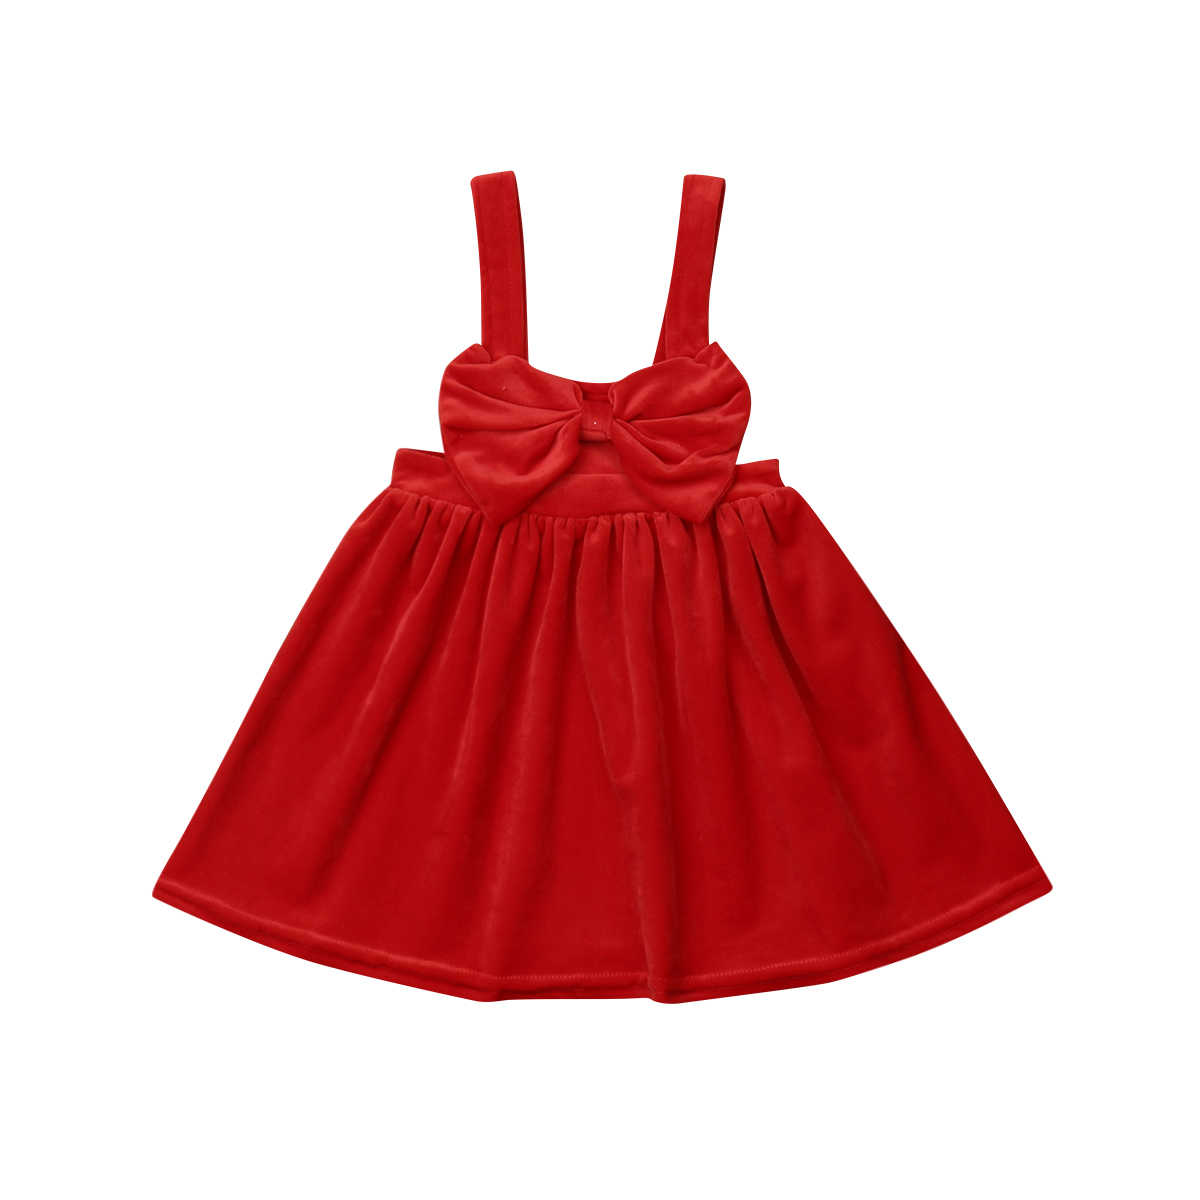 38b6b0b1a51 Detail Feedback Questions about 1 6Y Christmas Kid Baby Girls Red ...